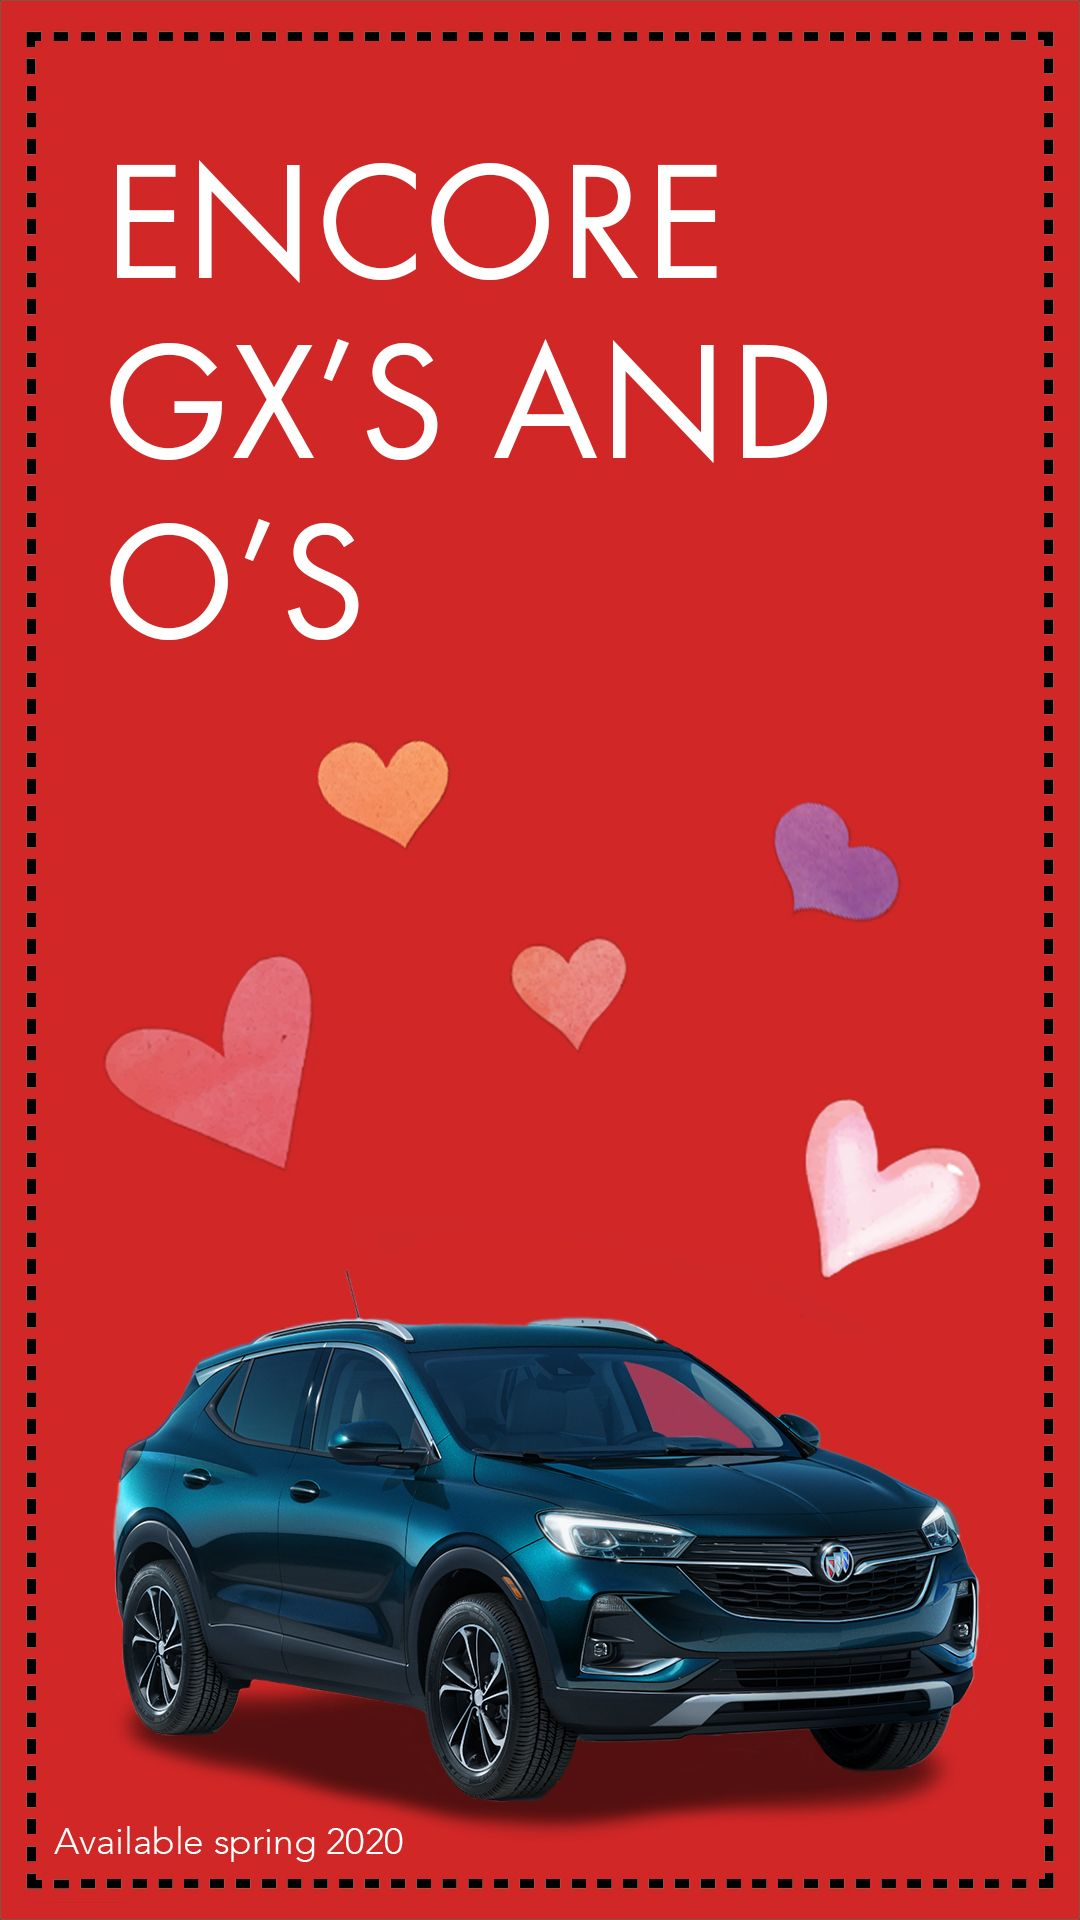 Buick Encore Gx Will Have You Loving Every Mile Of Your Valentine S Day Travels Valentinescards In 2020 Small Suv Buick Encore Buick